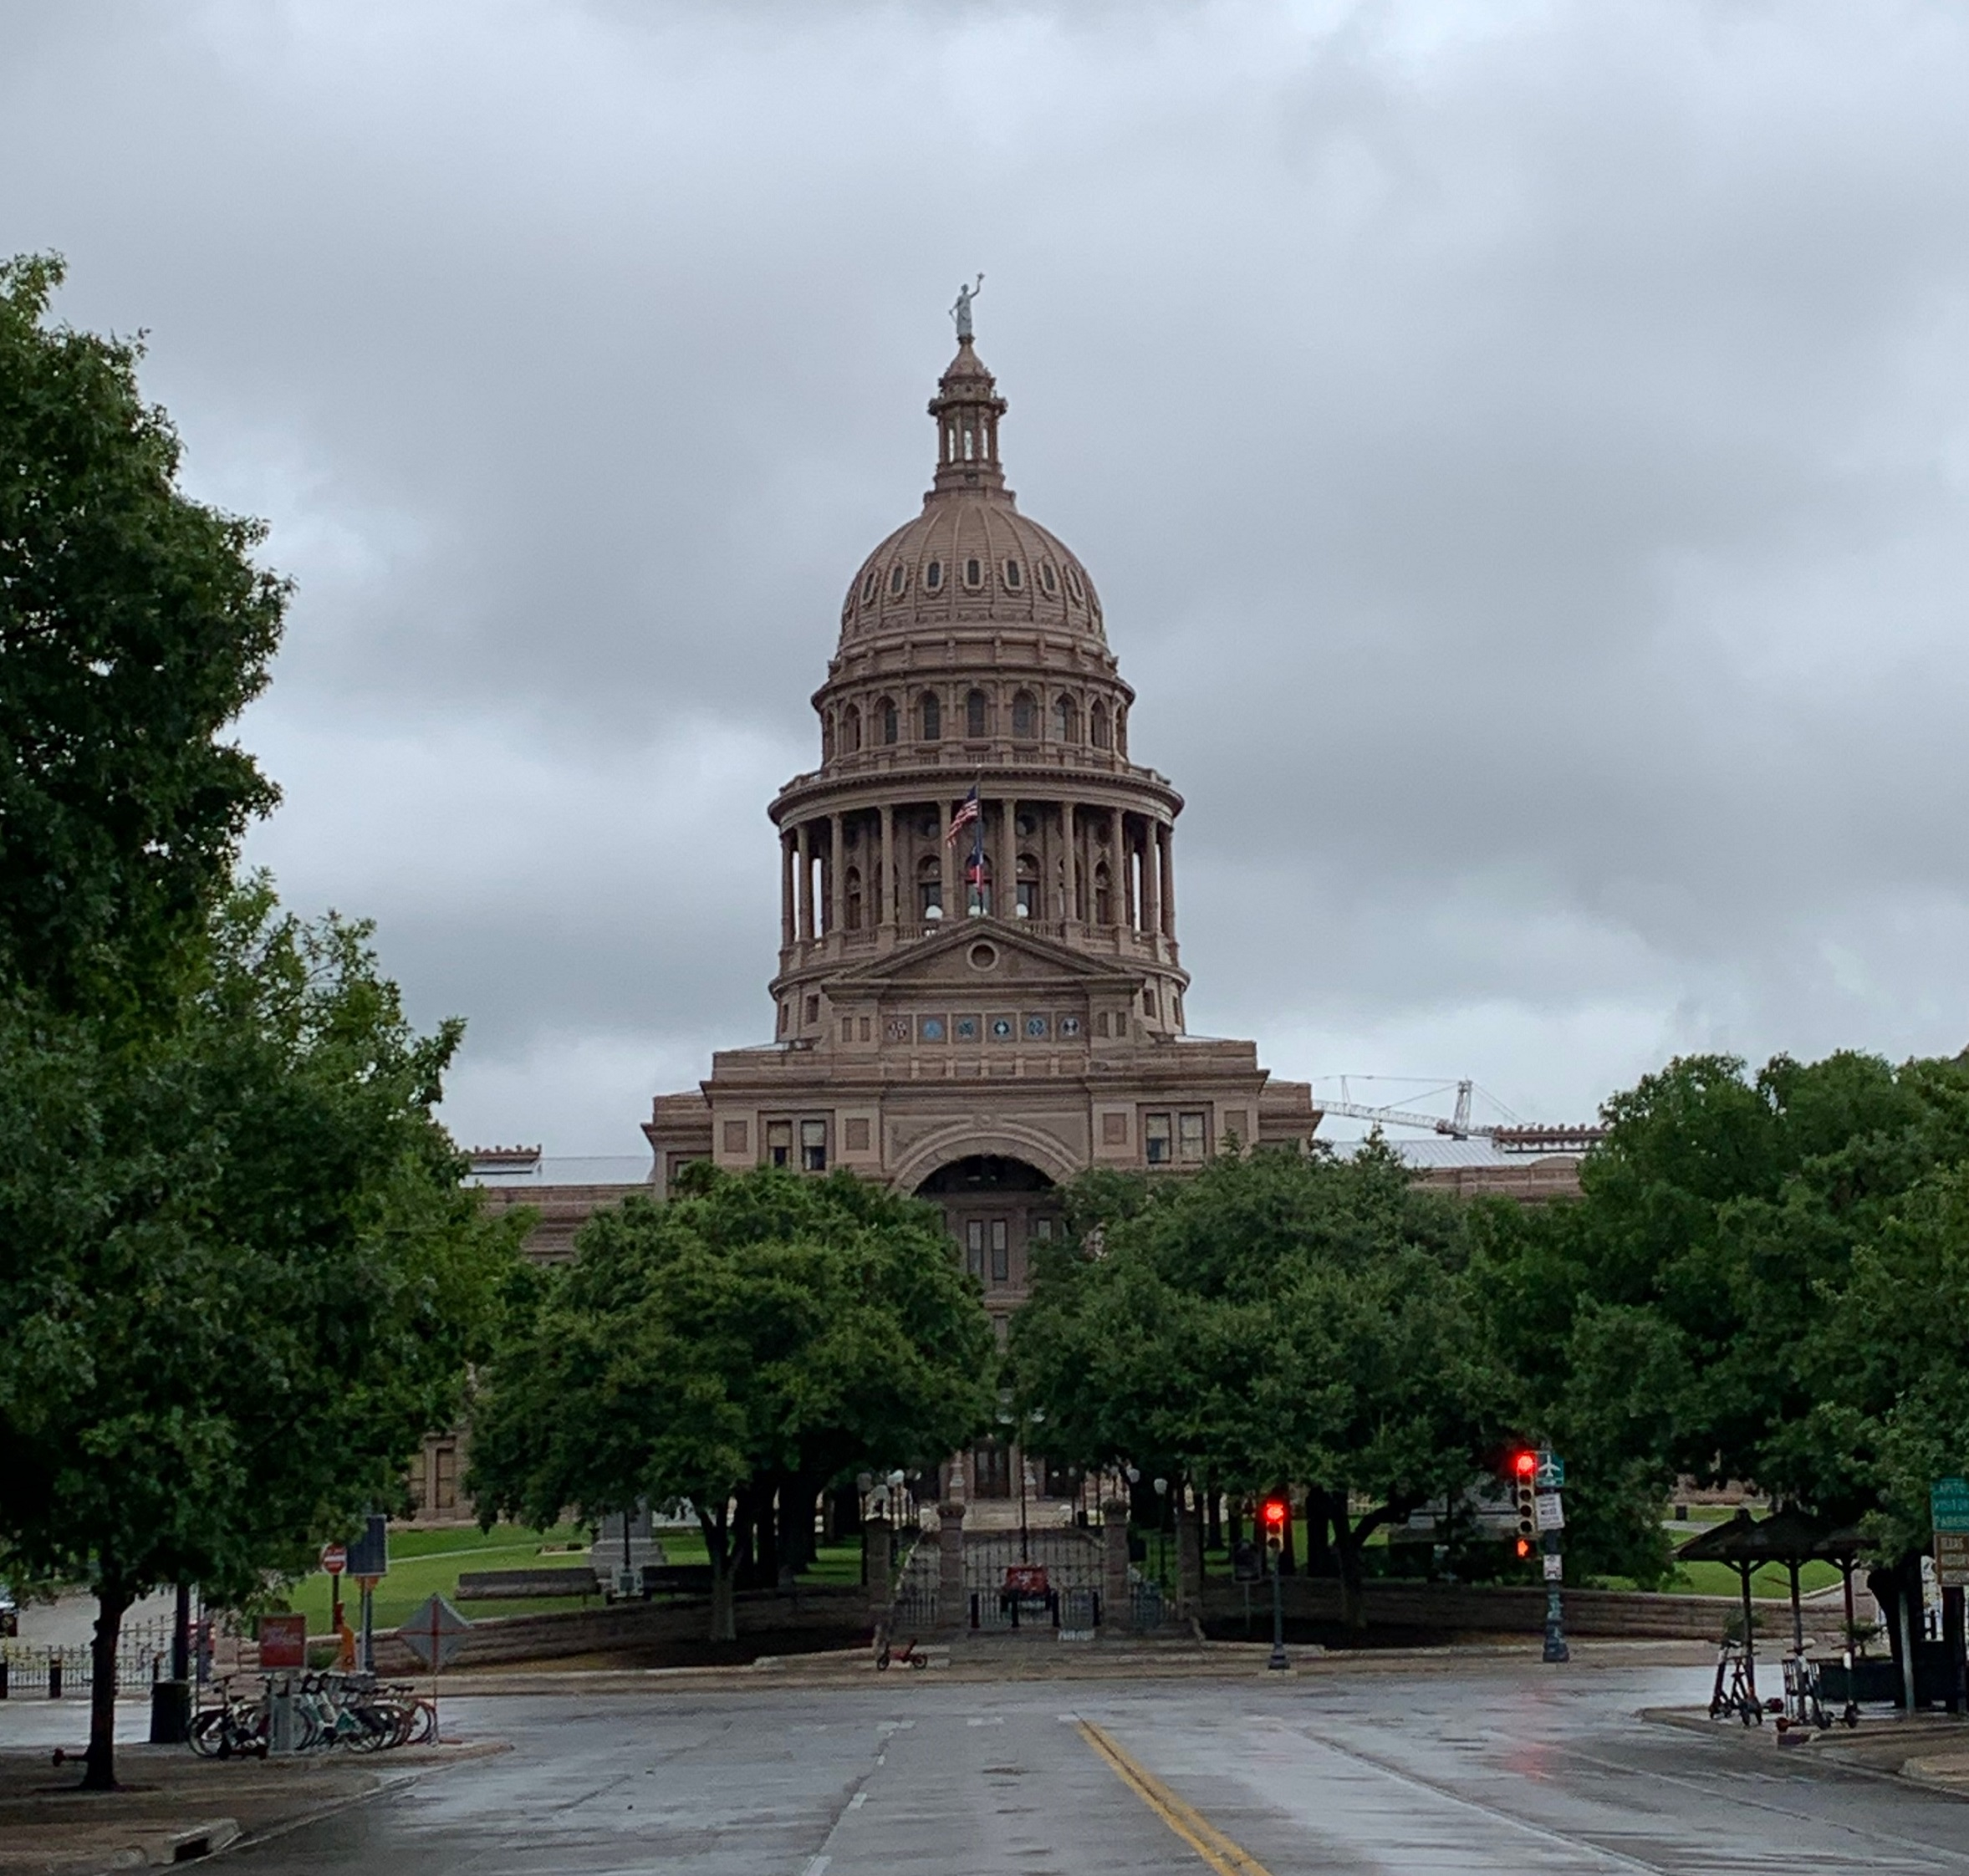 Photos from Austin Capital YRE on June 20th